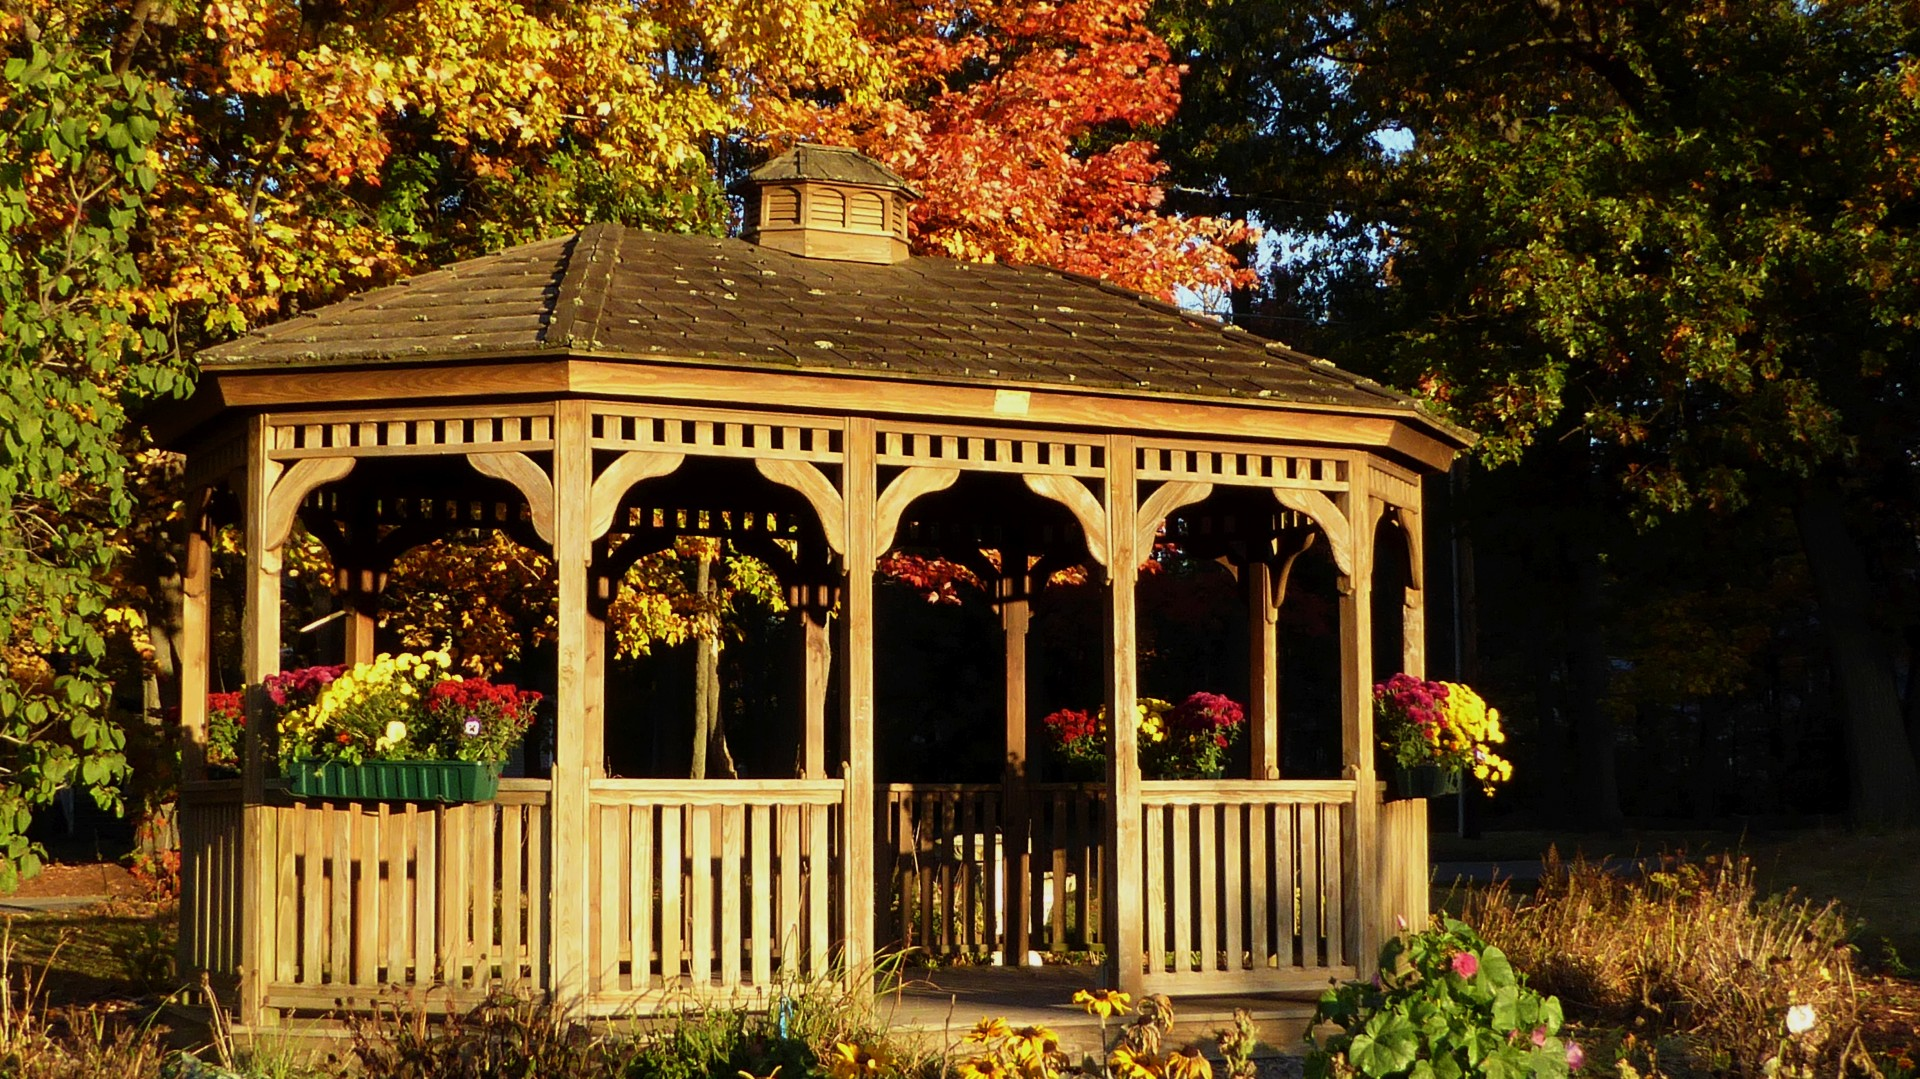 10x13 hard top gazebo surrounded by natural foliage